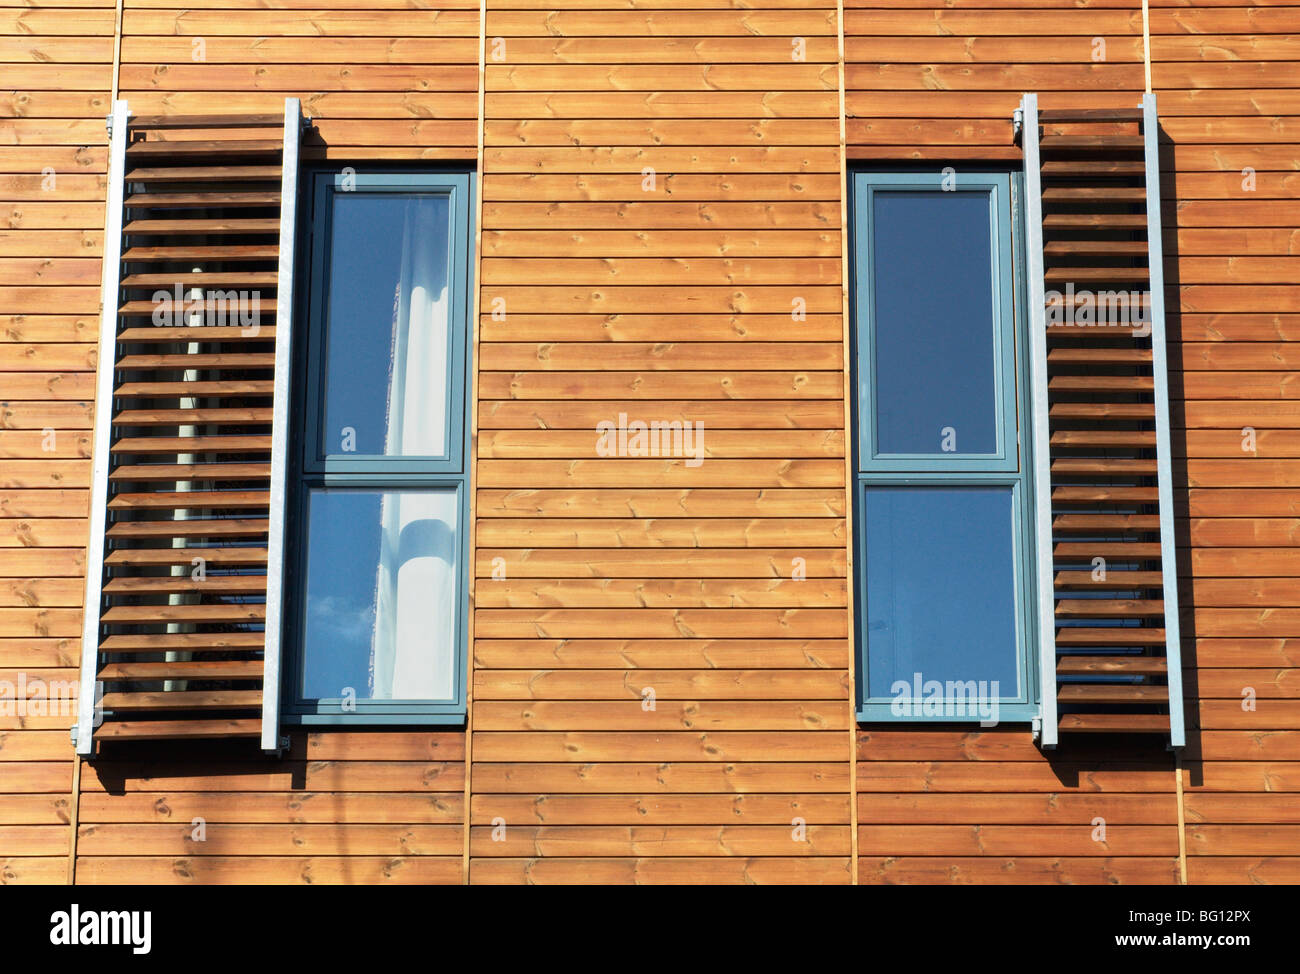 Building Architecture Housing Harlow Stockfotos & Building ...